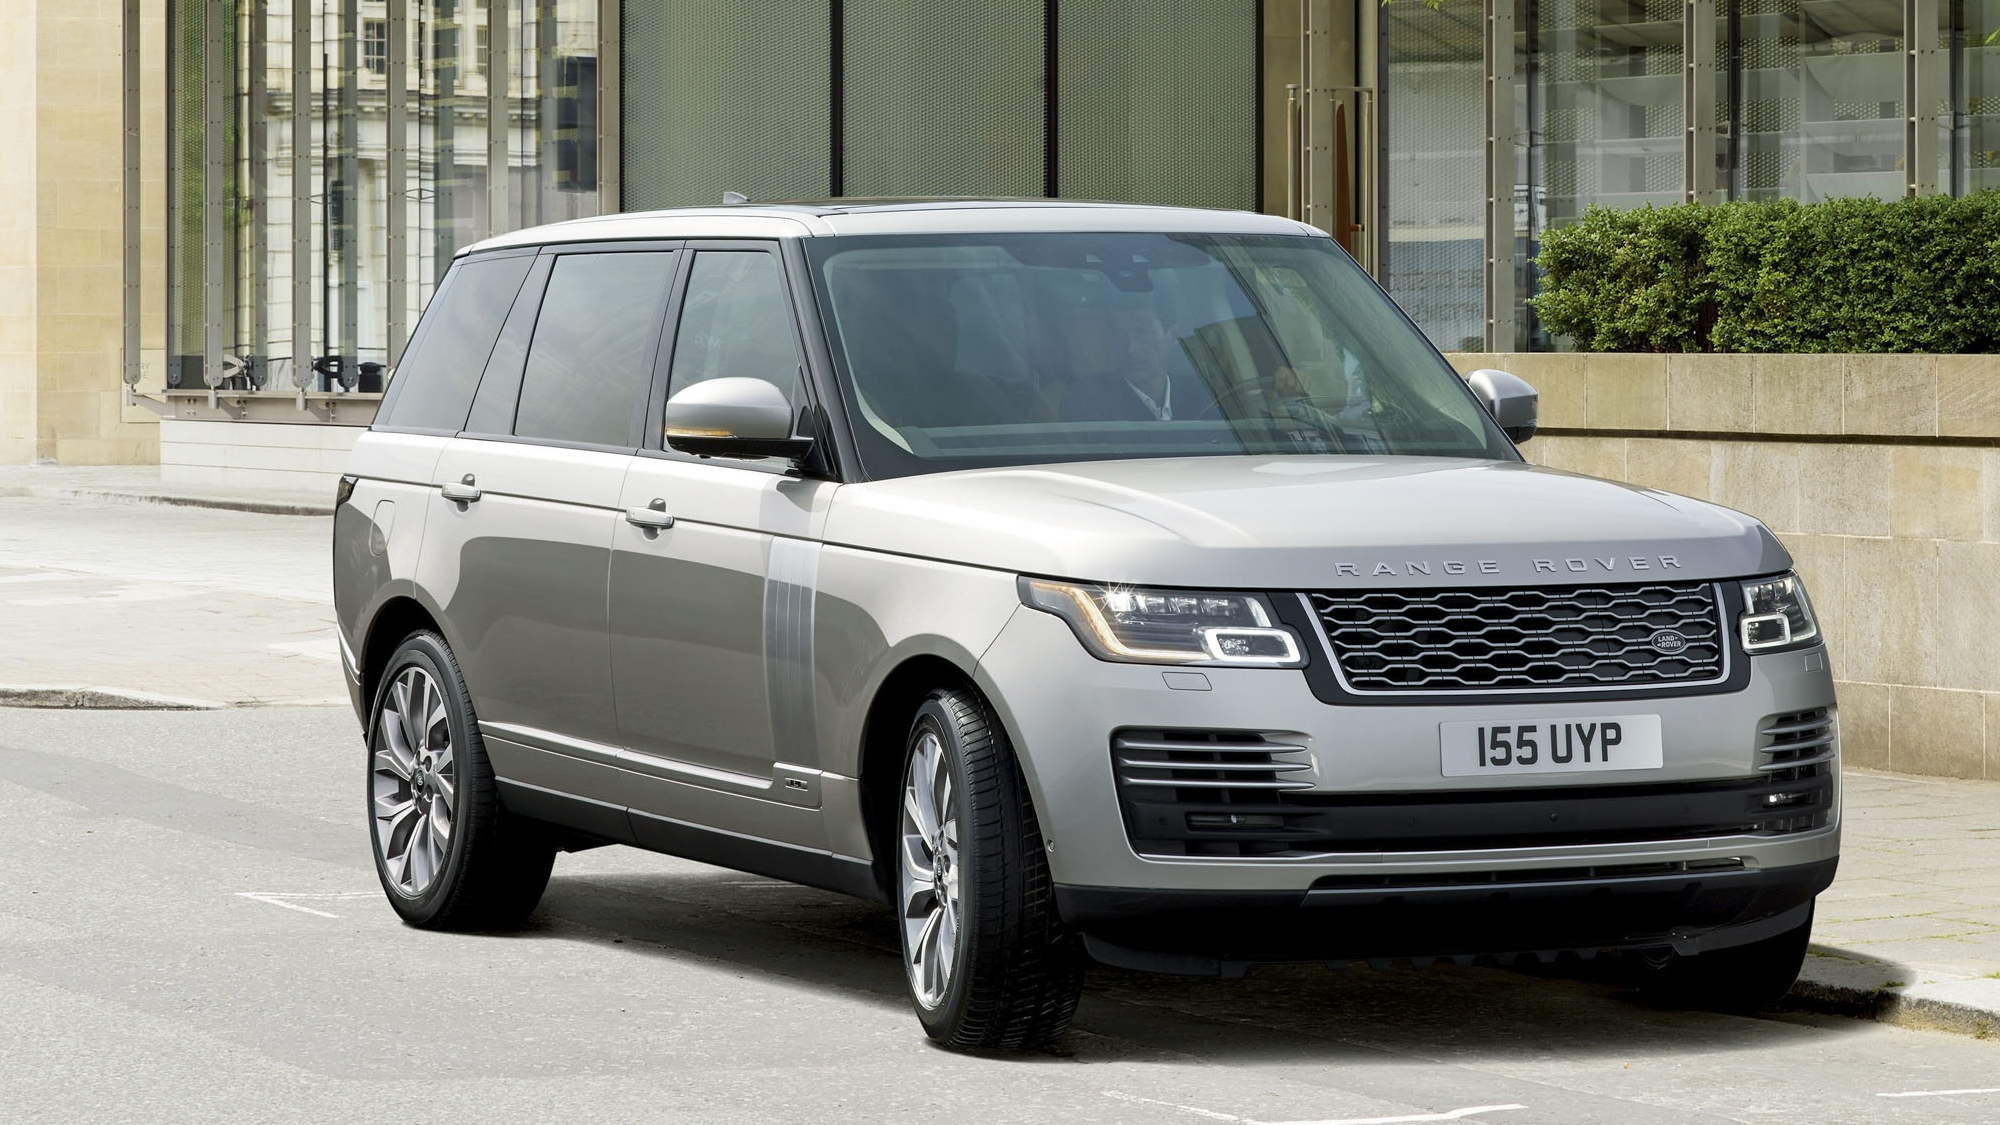 2019 land rover range rover p400e review gallery top speed. Black Bedroom Furniture Sets. Home Design Ideas